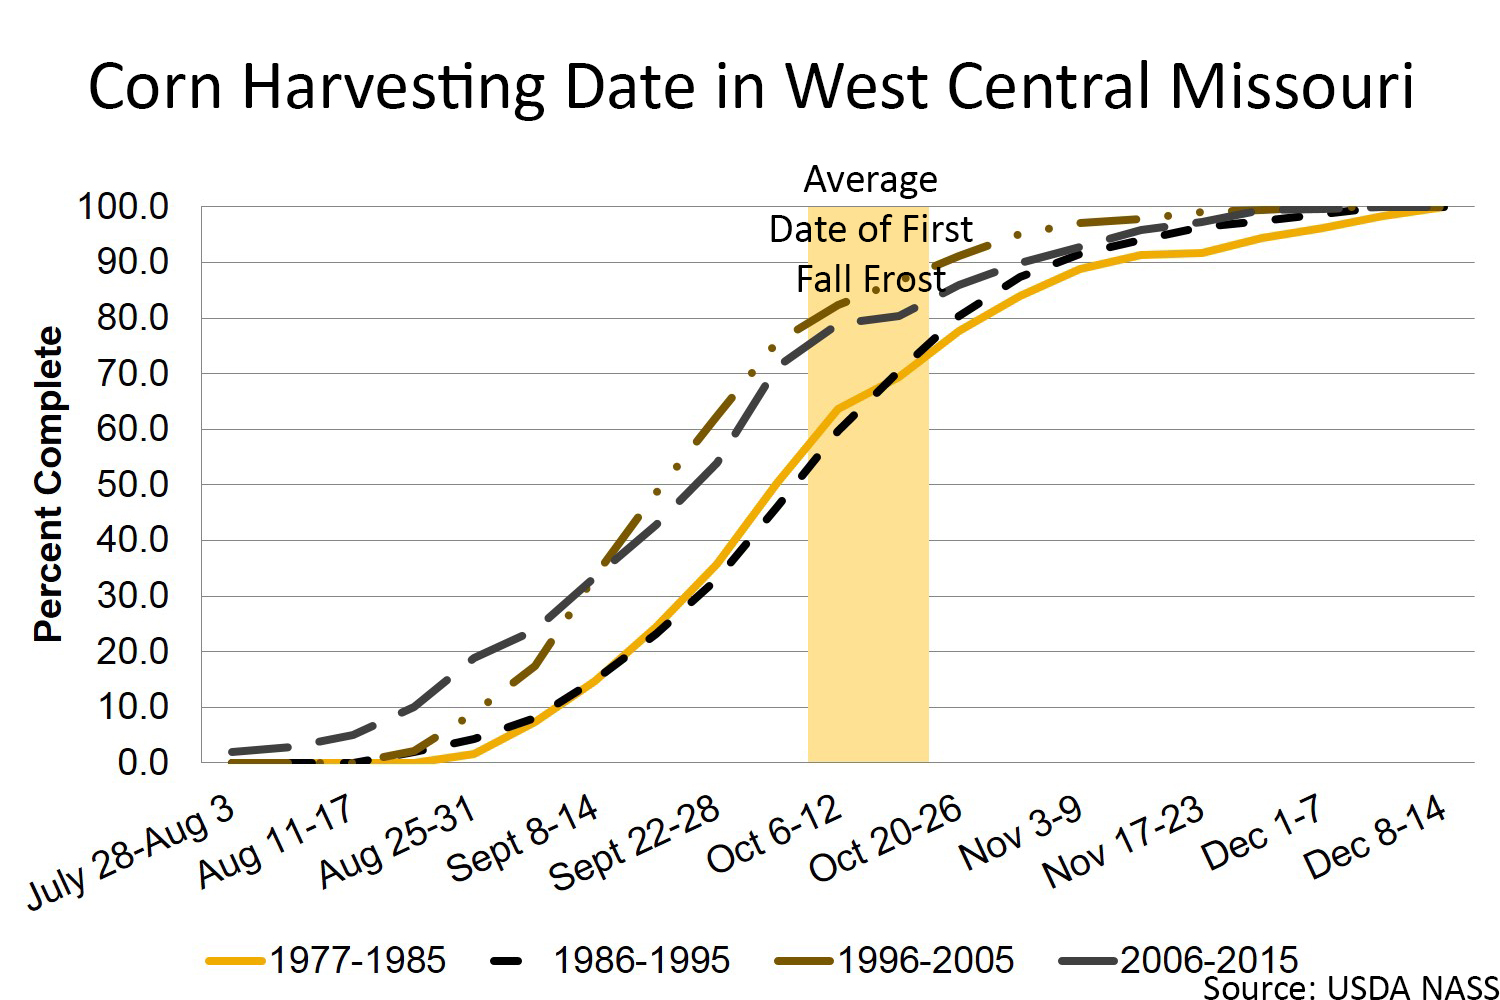 Corn harvesting date in west central Missouri chart